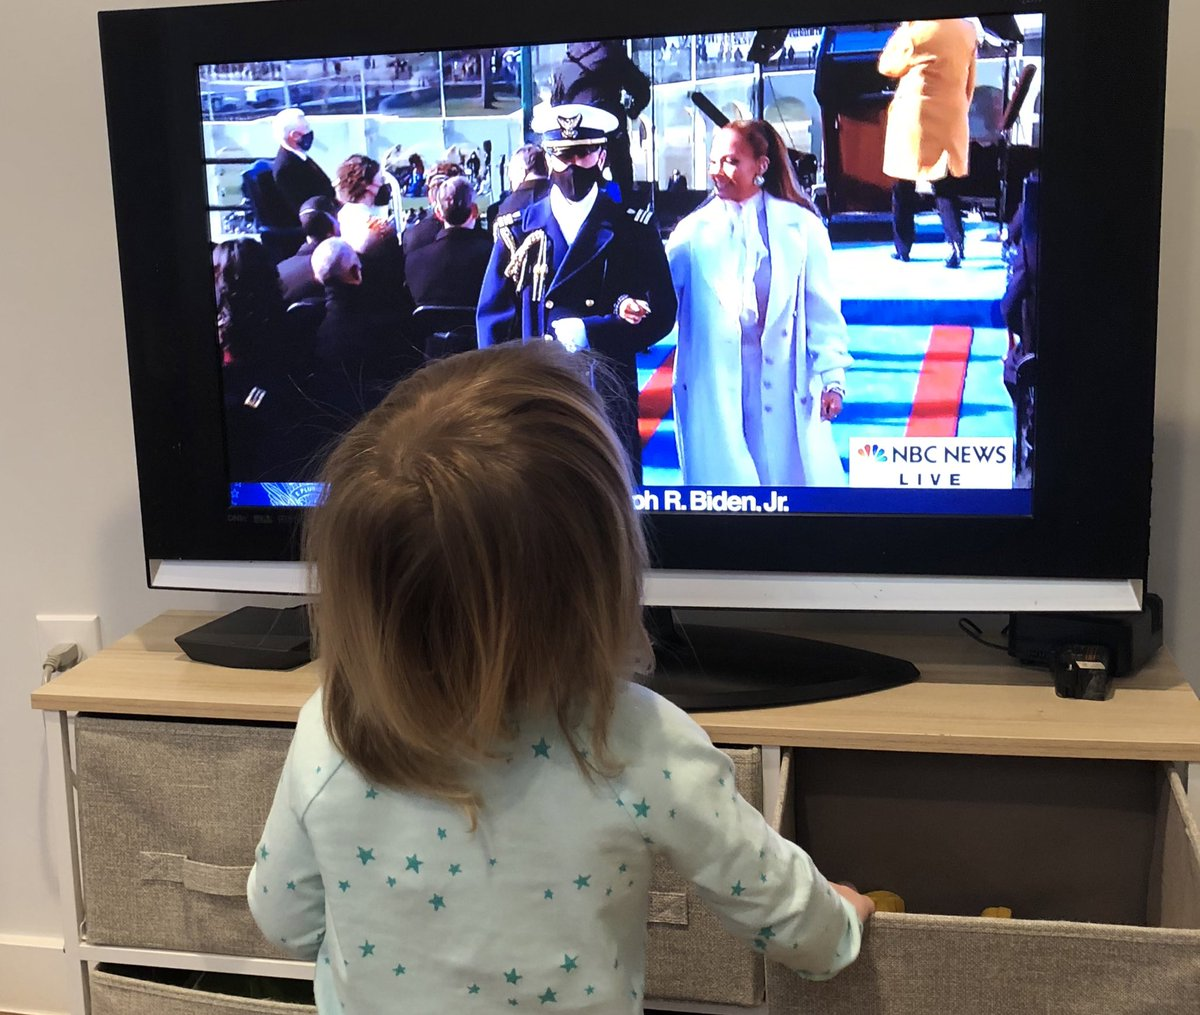 Dispatch from home: Cricket was into JLo. #CrickyFromTheBlock